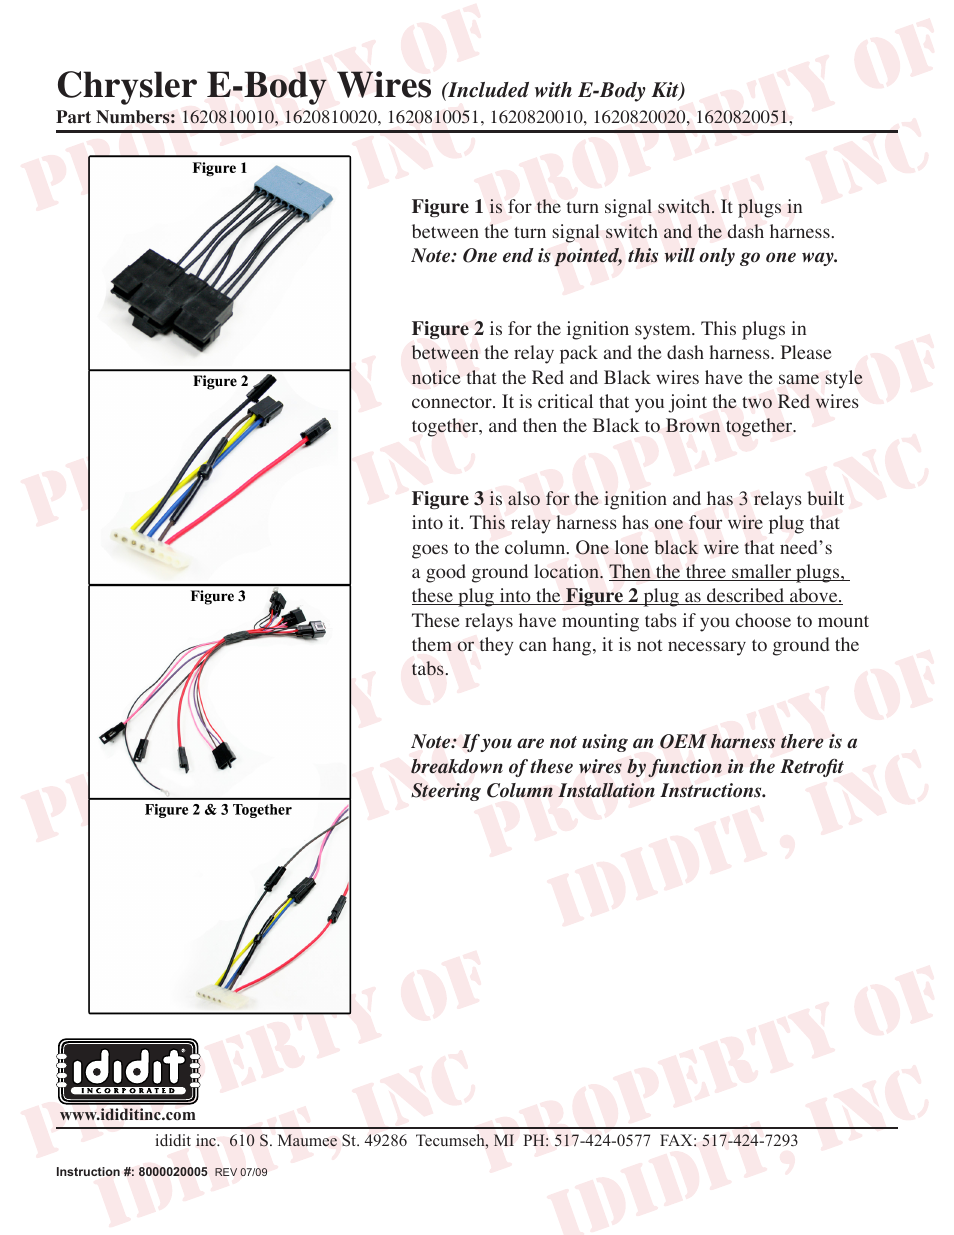 ididit Retrofit Steering Column: 1970-74 Cuda/Challenger Ignition Switch  User Manual | 1 page